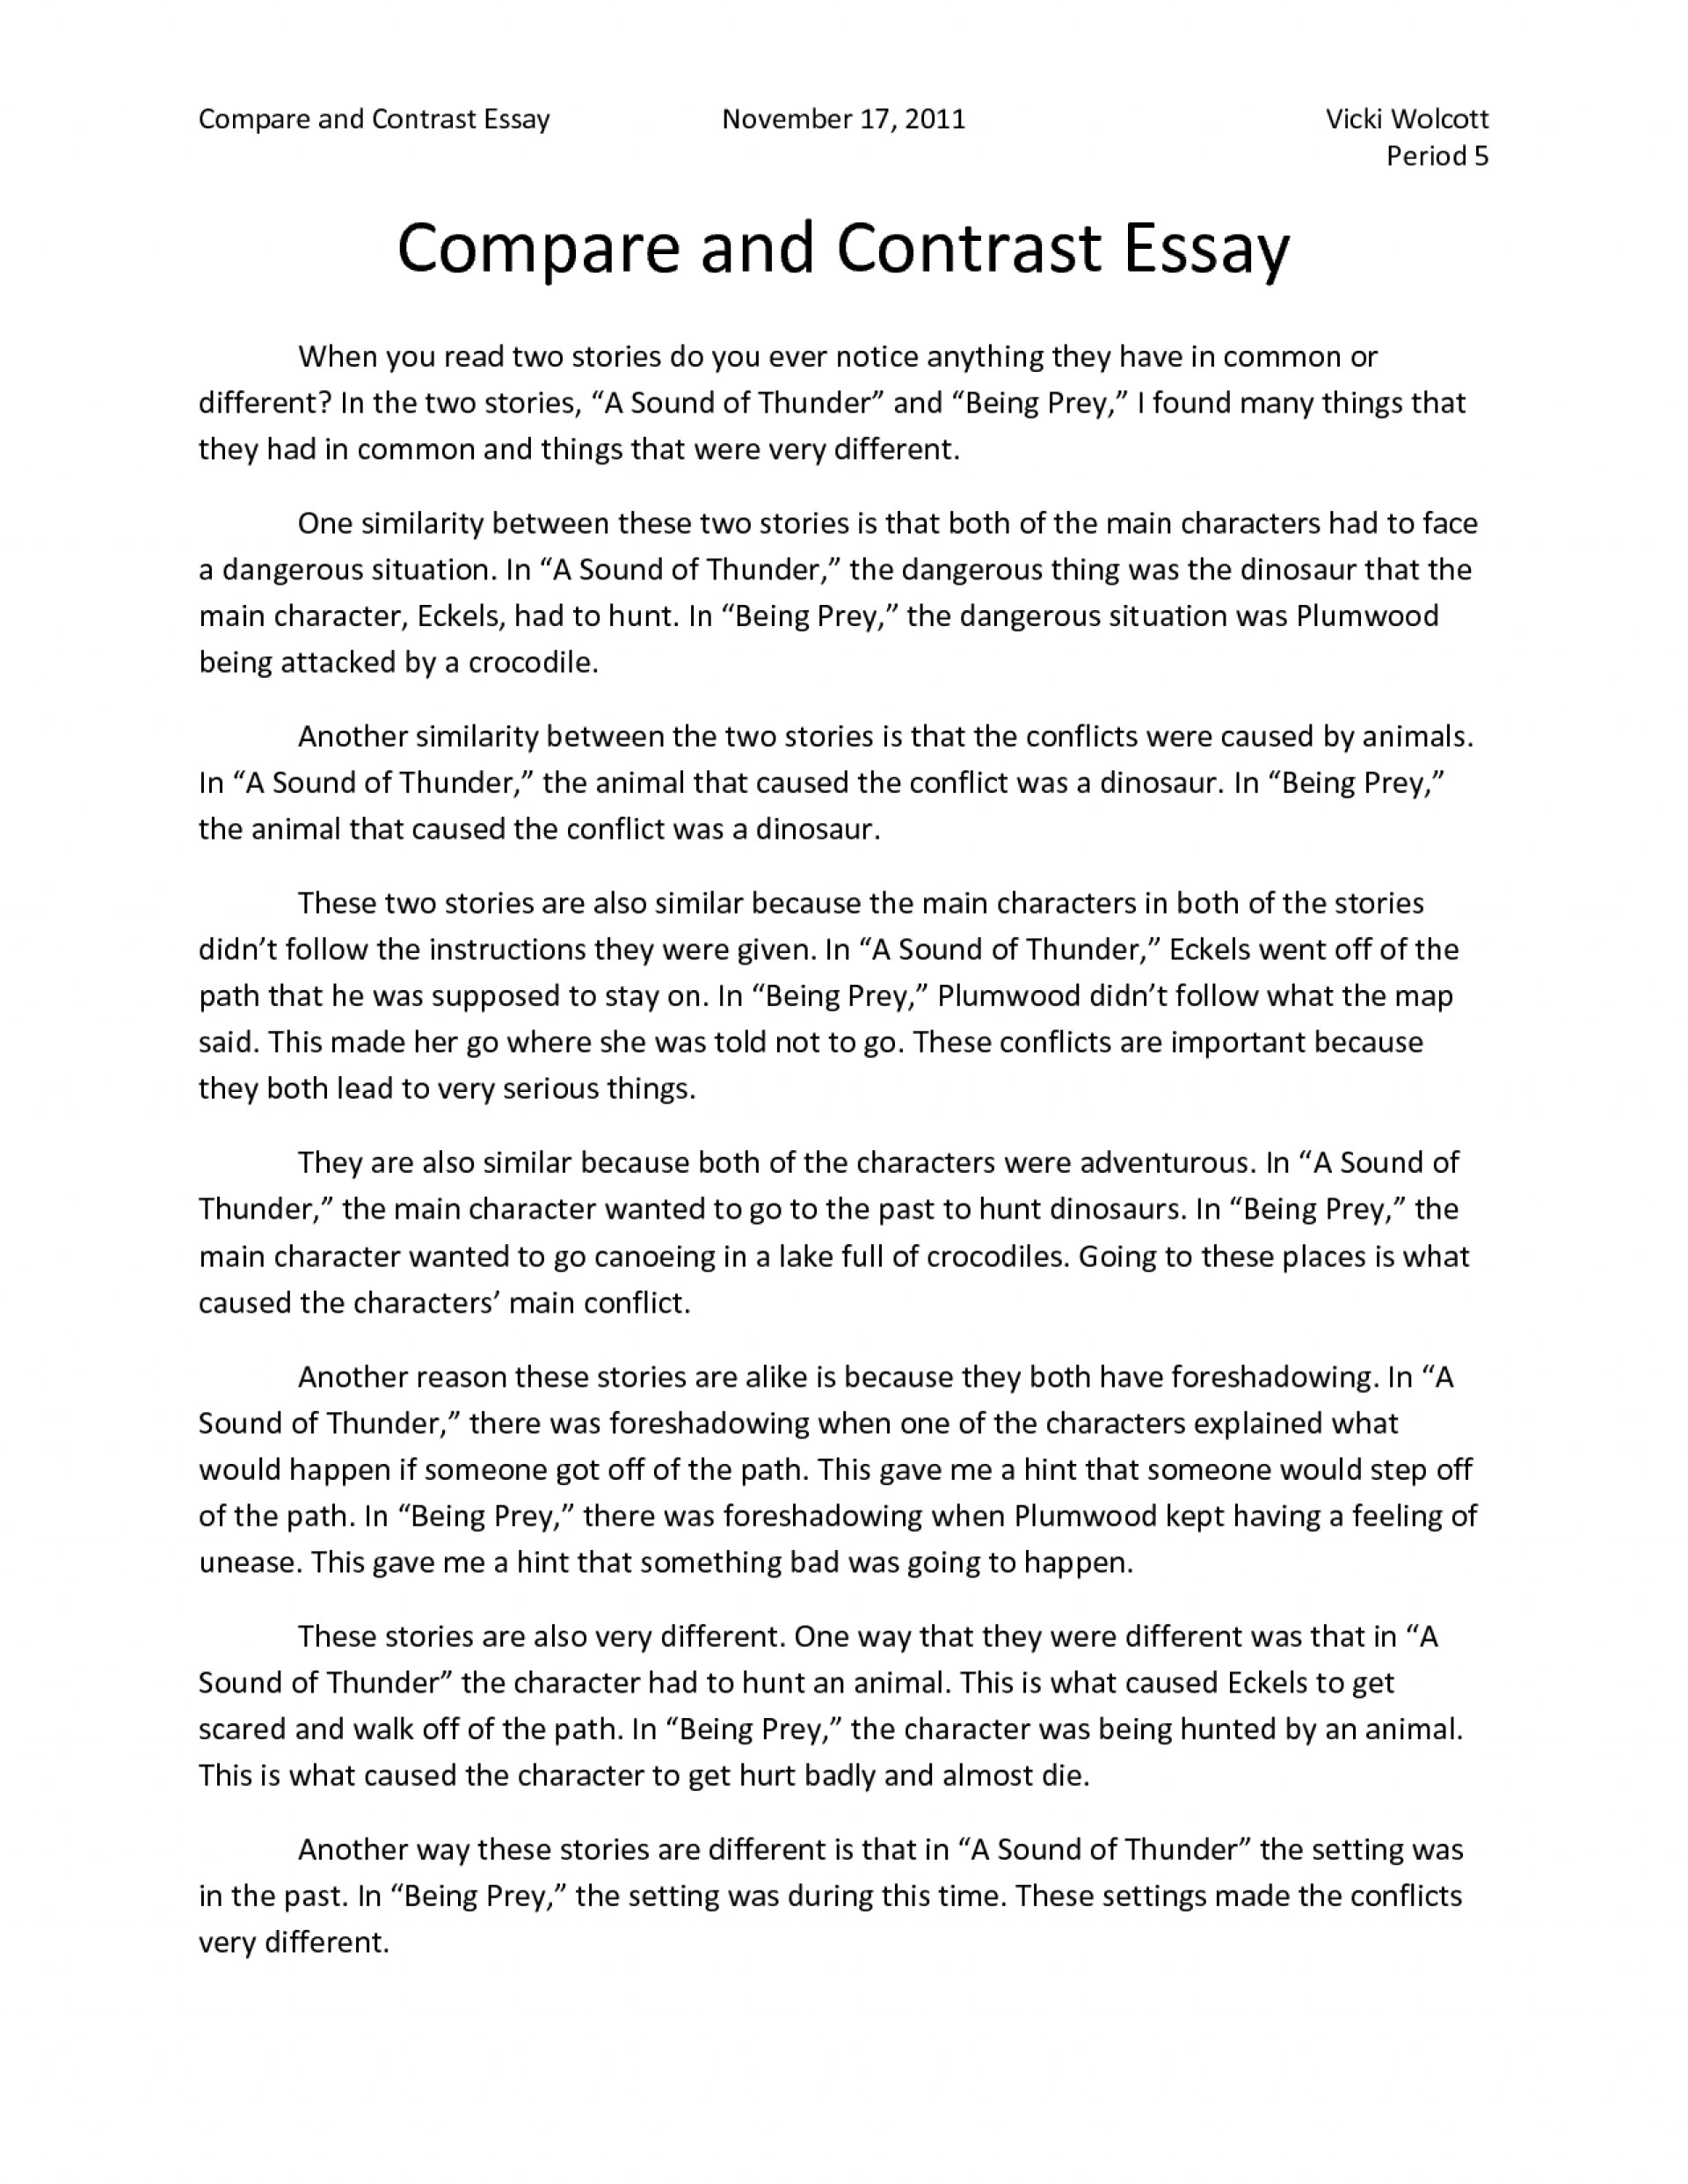 003 Perfect Essays Compare And Contrast Essay Introduction Example How To Write College Striking Examples Elementary Fourth Grade For Students 1920